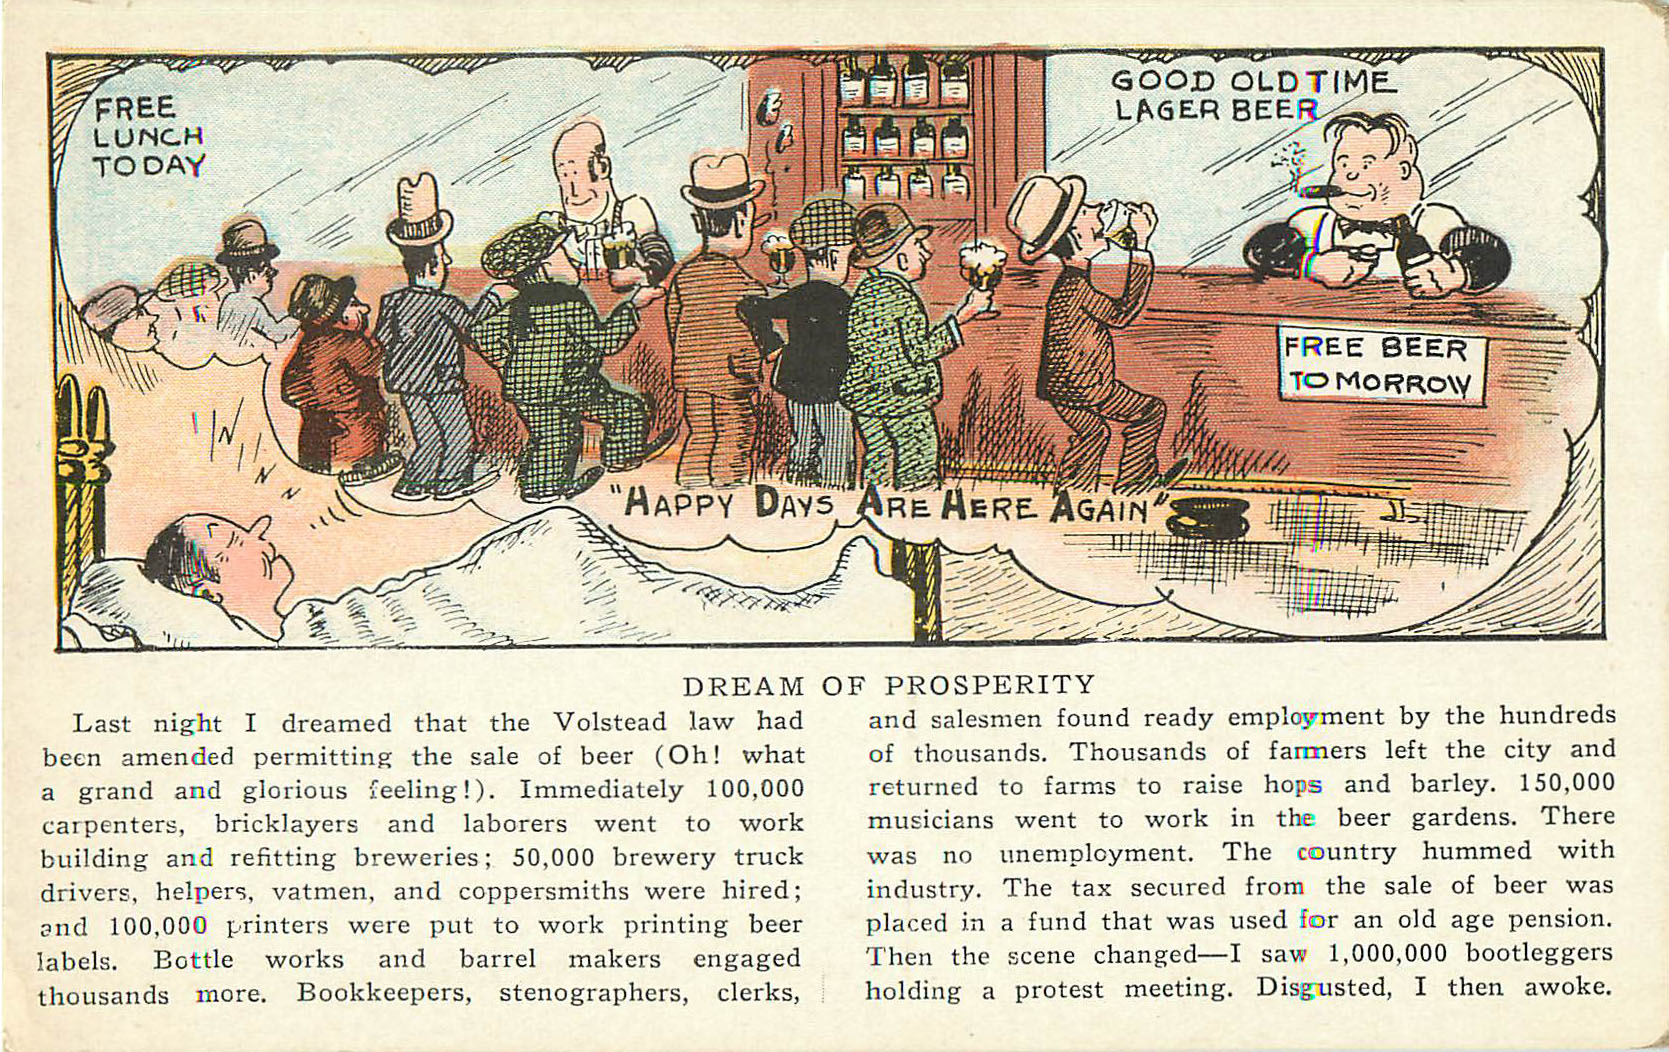 Alcohol Postcard - Dream of Prosperity